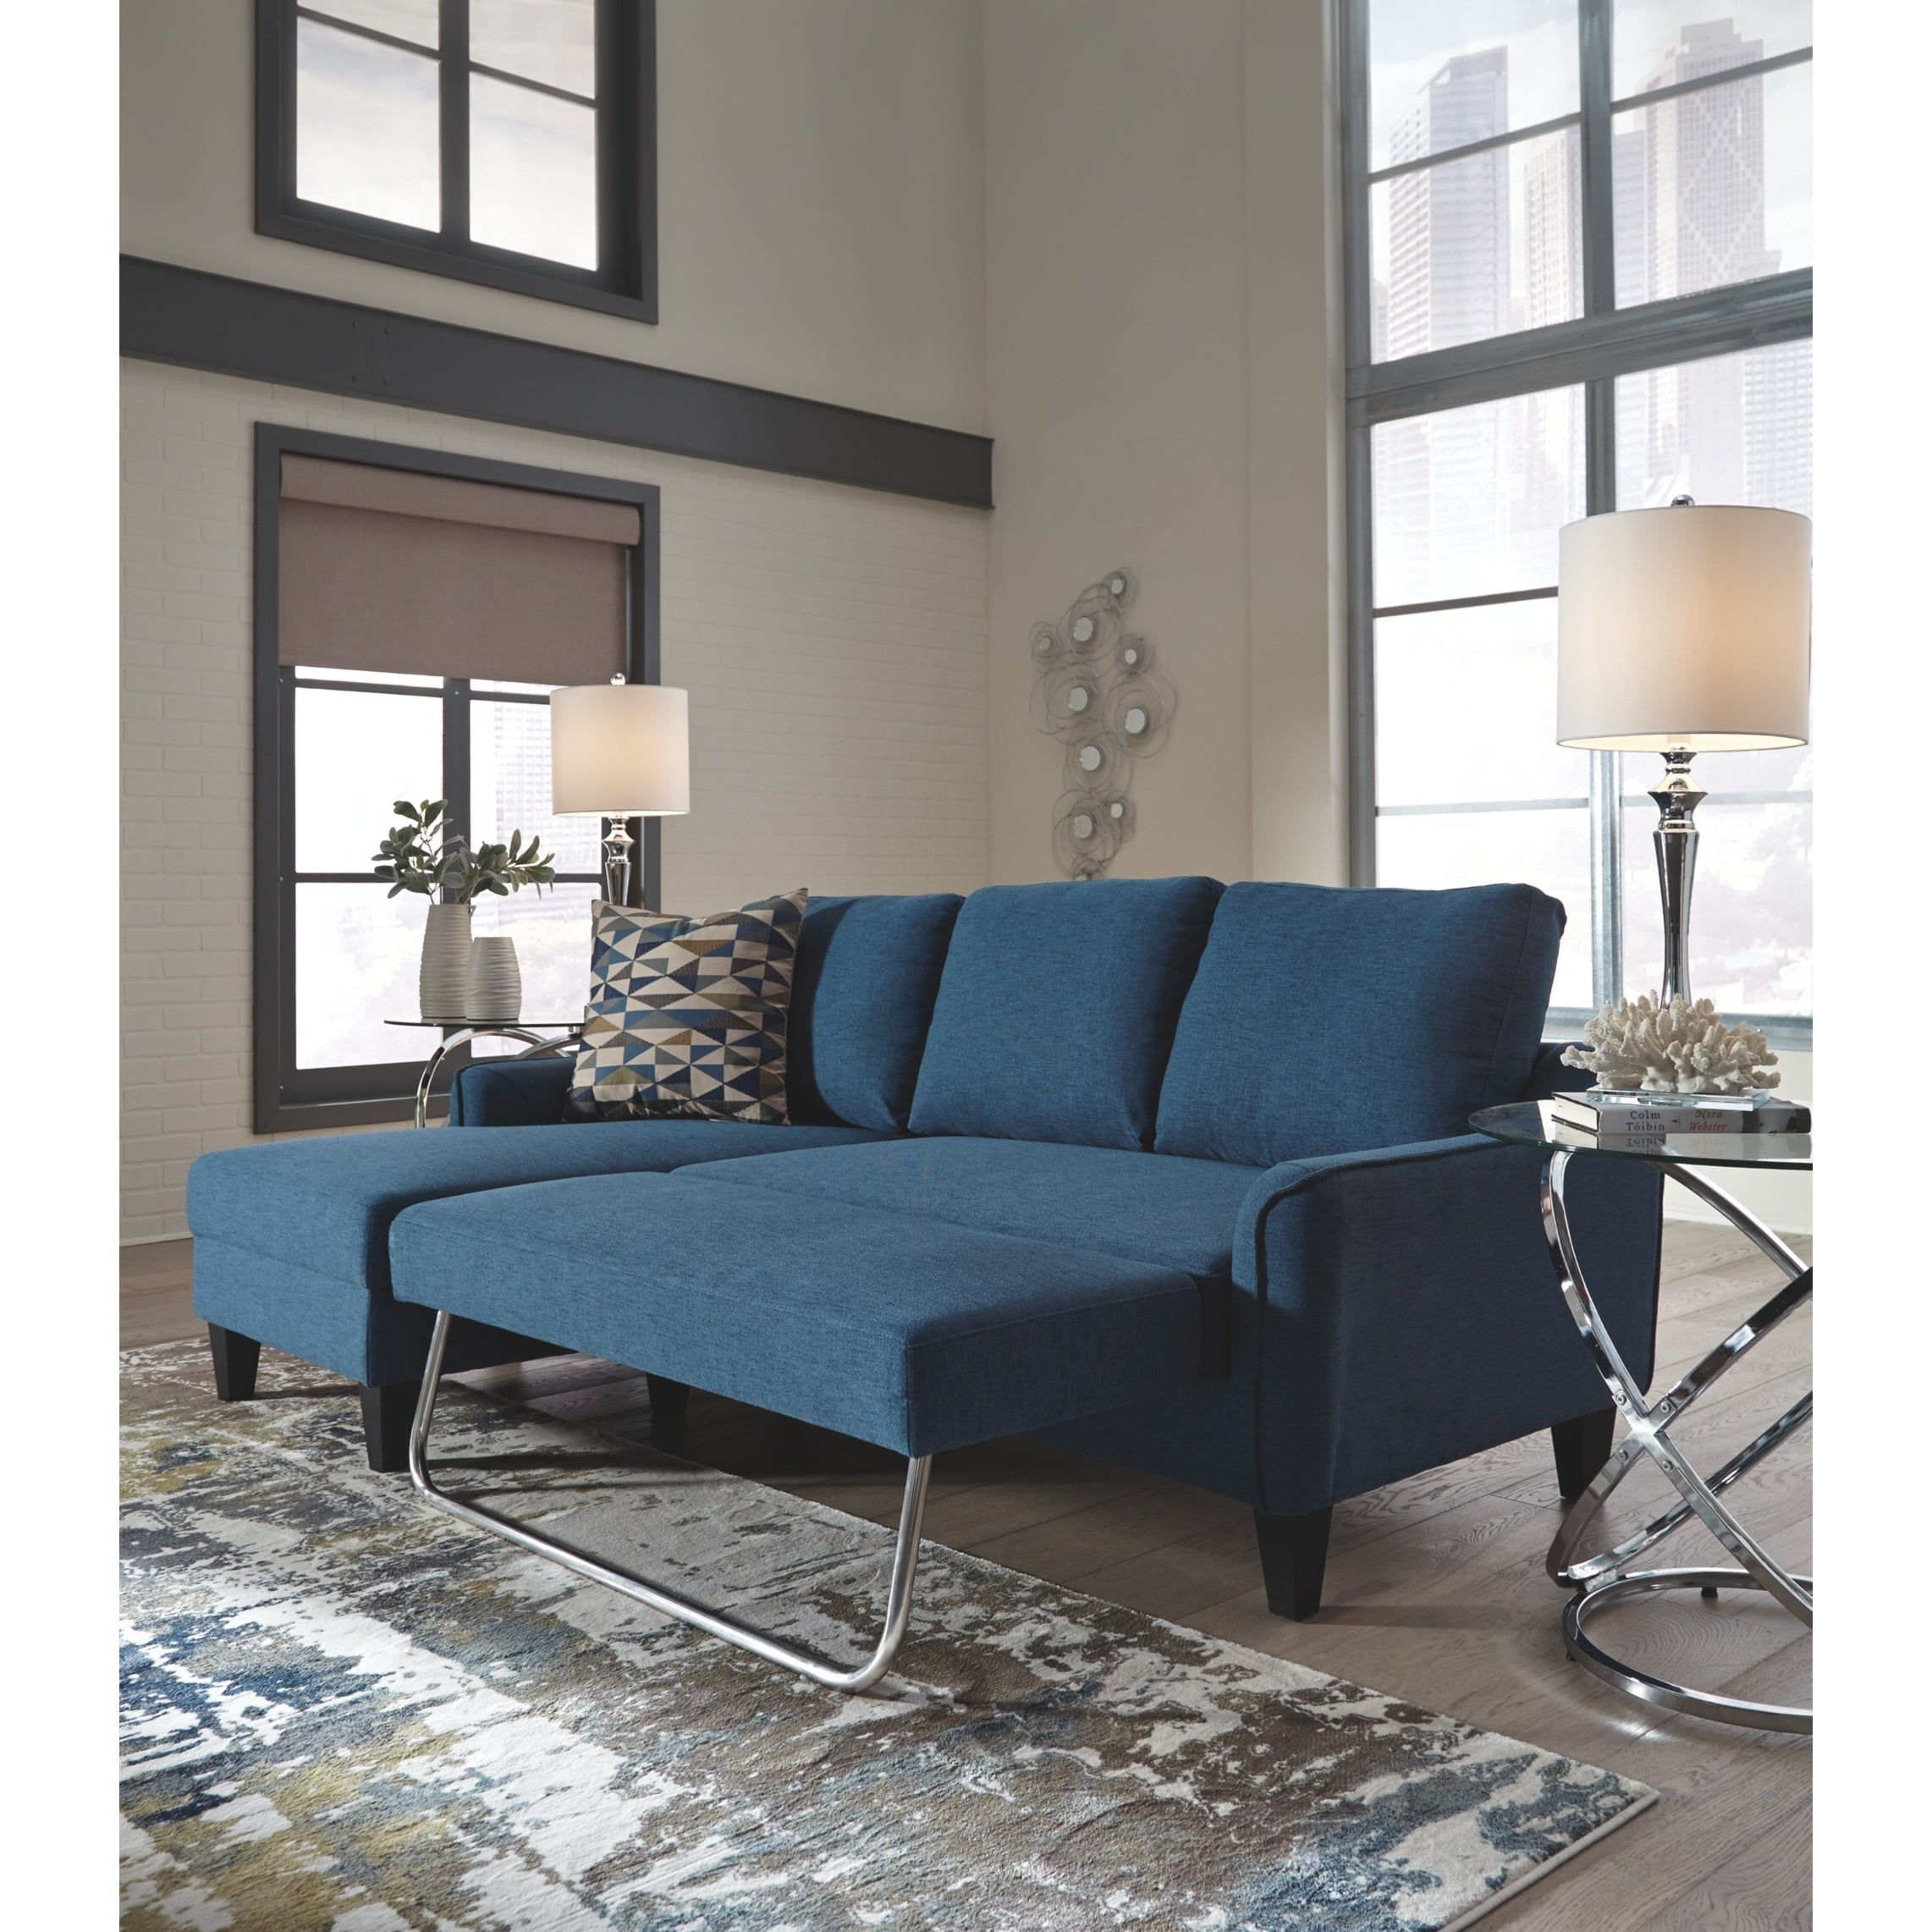 Jarreau Contemporary Blue Sofa Chaise Sleeper Overstock 21012426